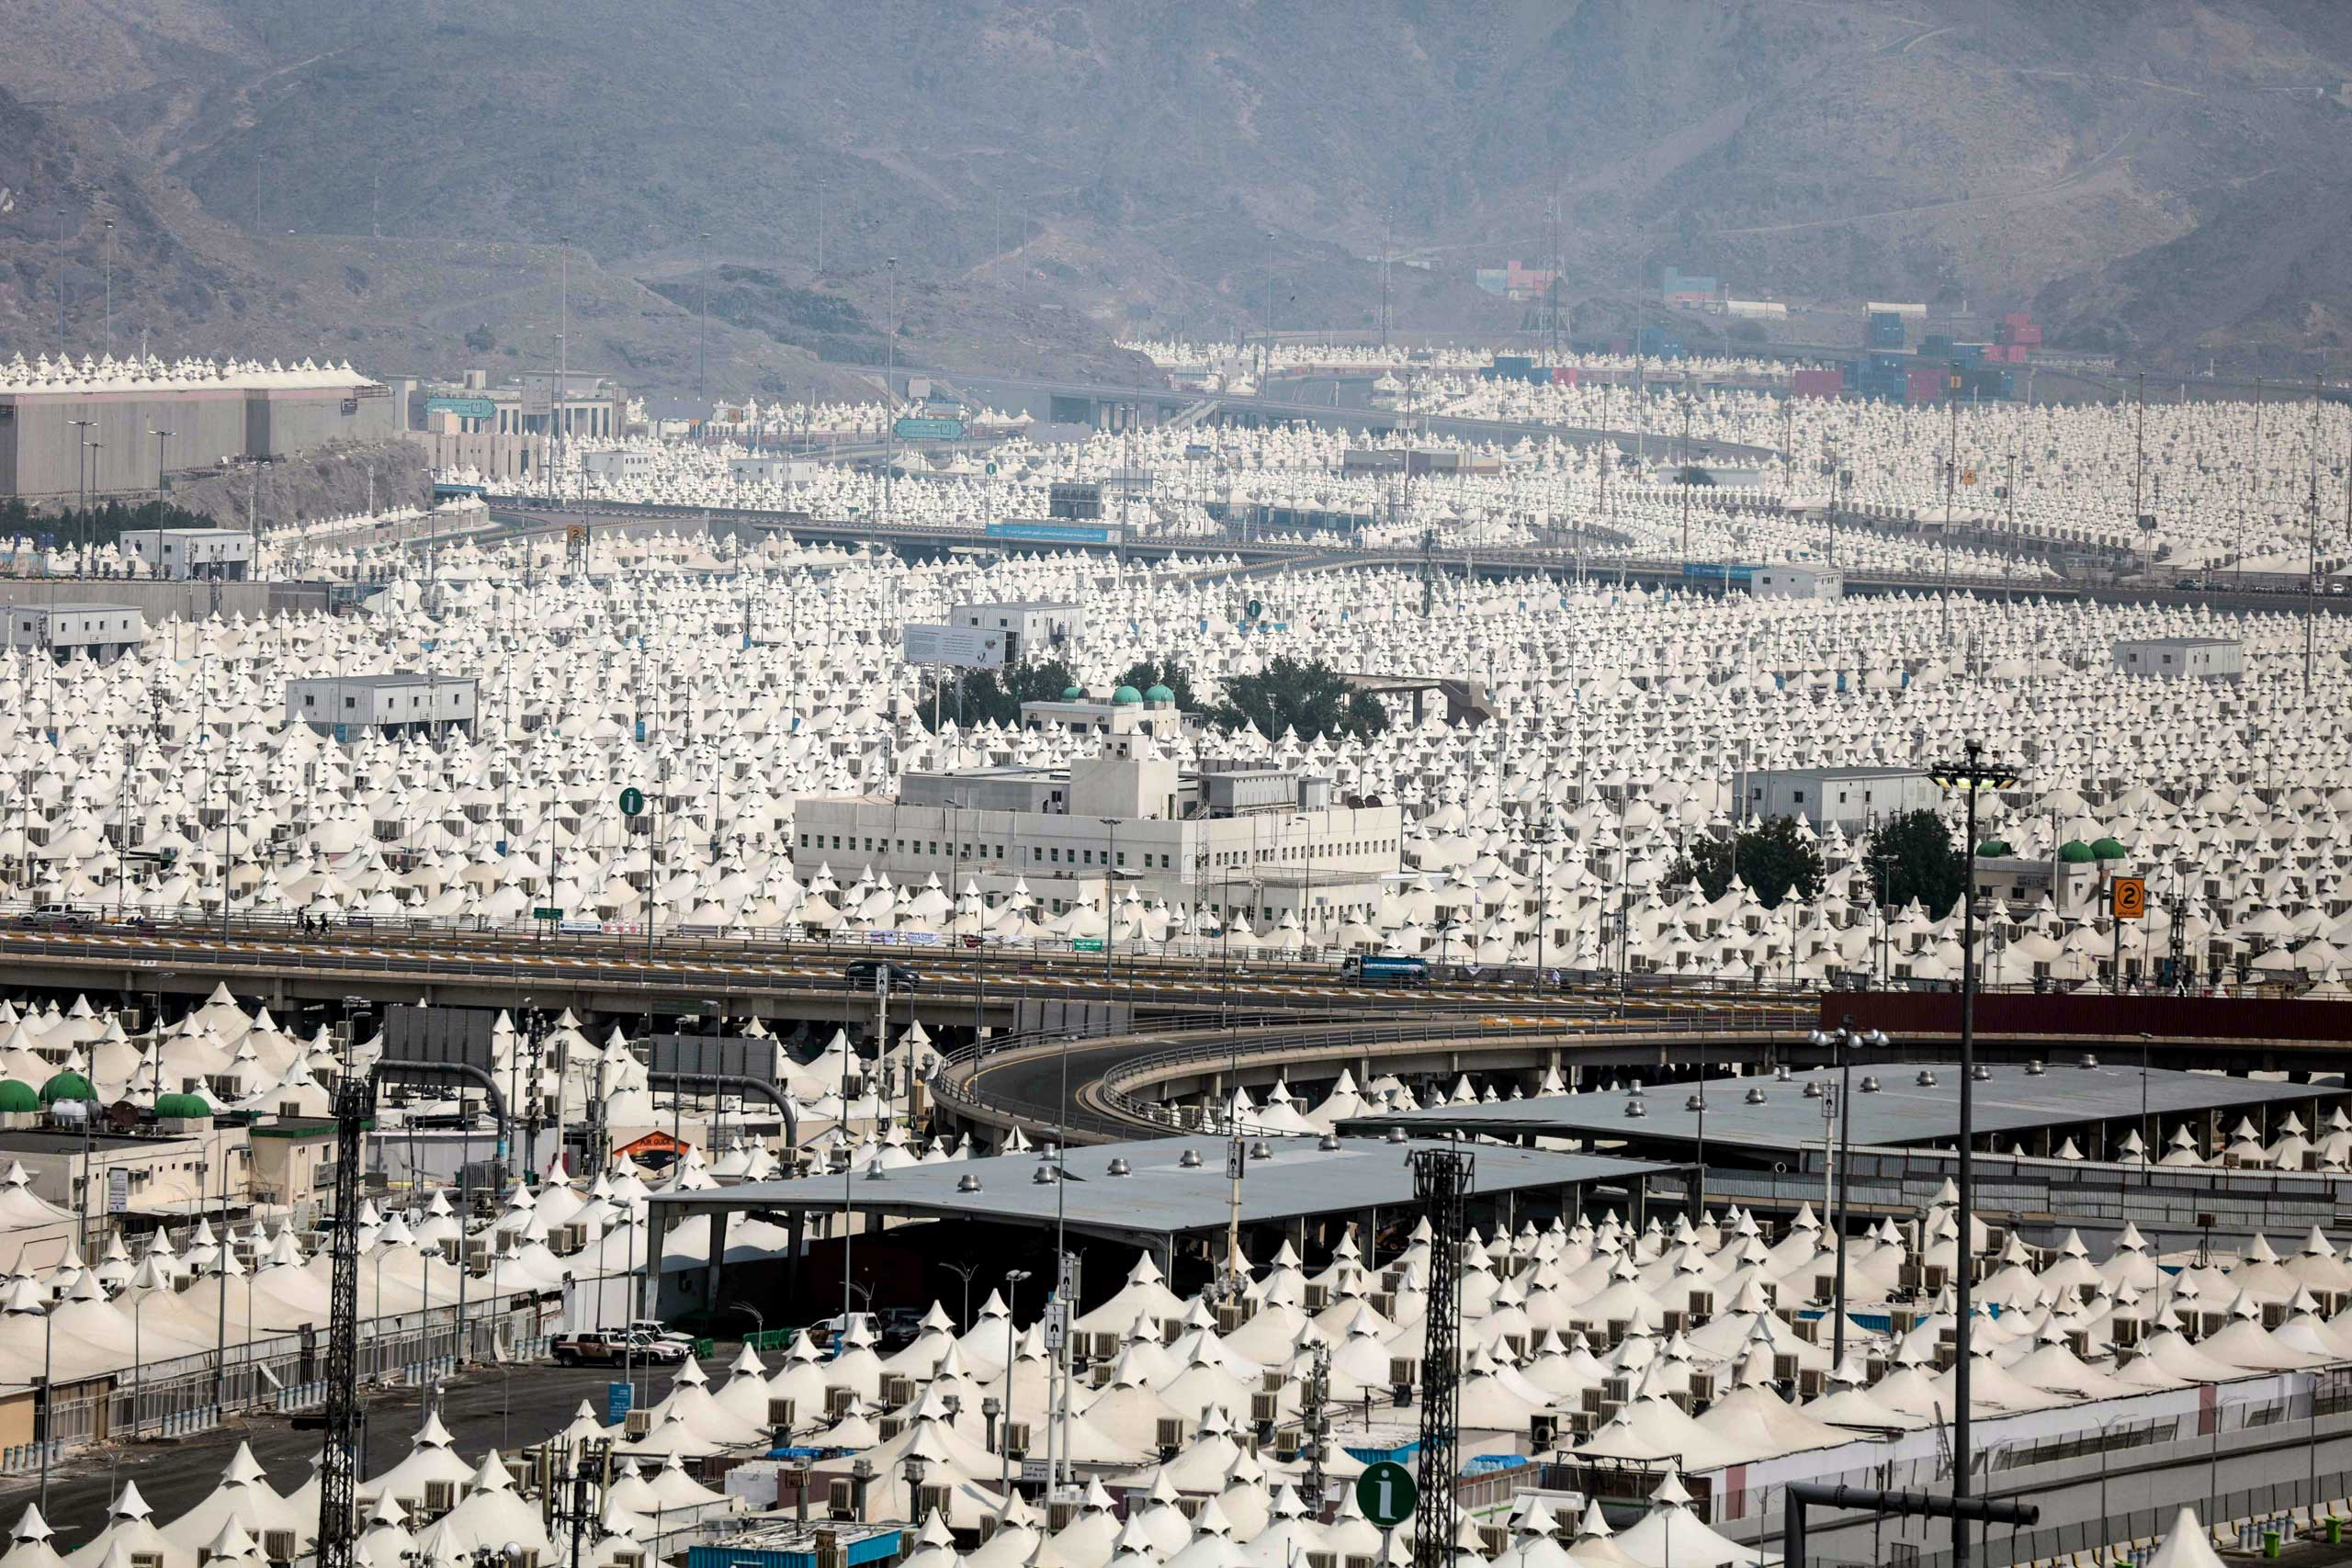 Thousands of tents are prepared to host millions of Muslim pilgrims during the annual pilgrimage, known as the Hajj, in Mina, on the outskirts of the holy city of Mecca,  on Sept. 19, 2015.